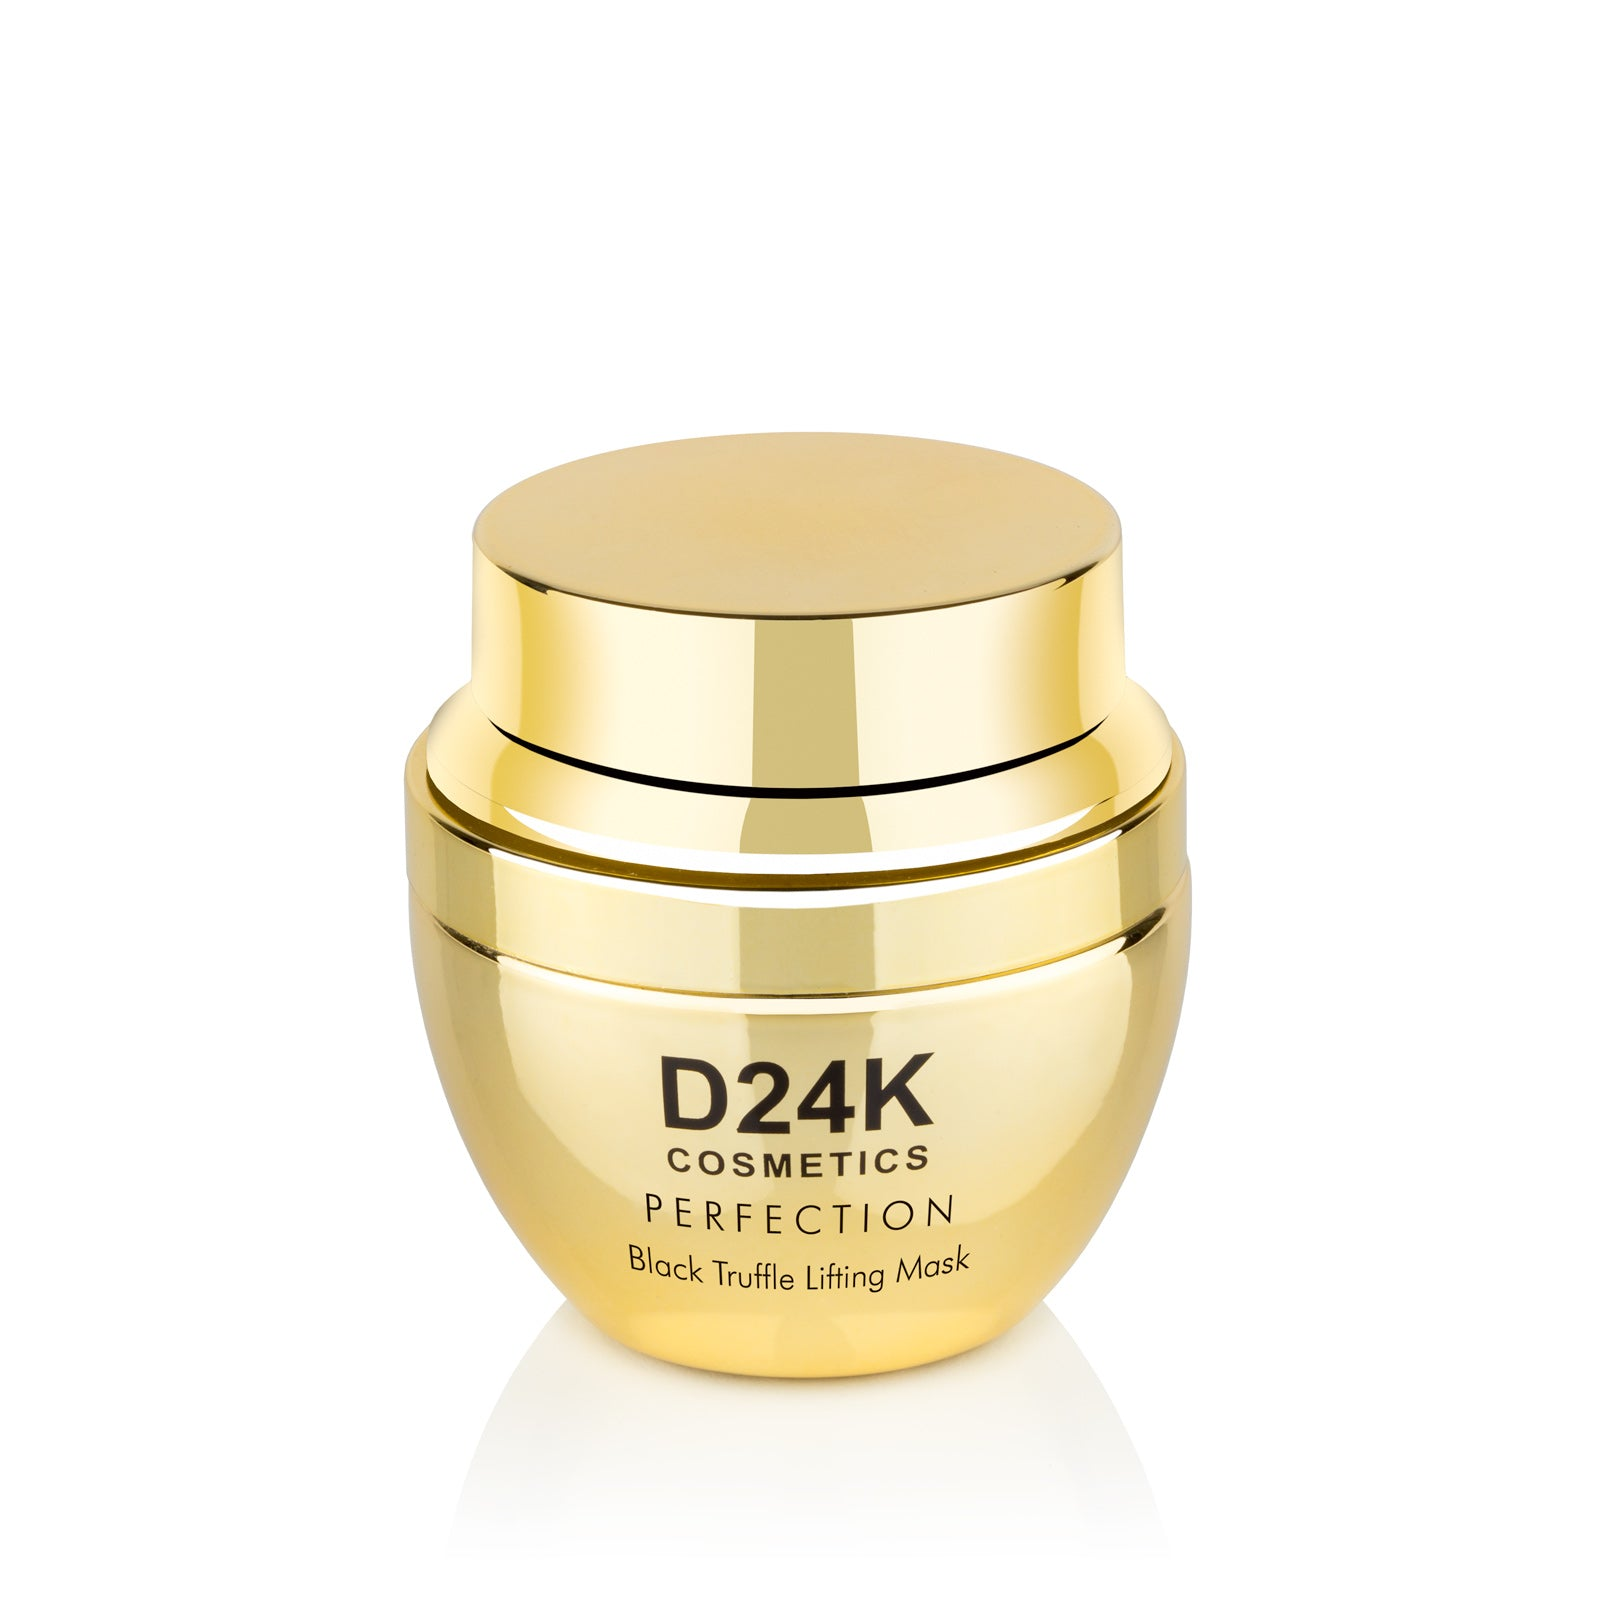 D24K by D'OR - Perfection Lifting Mask with Black Truffle & Black Pearl